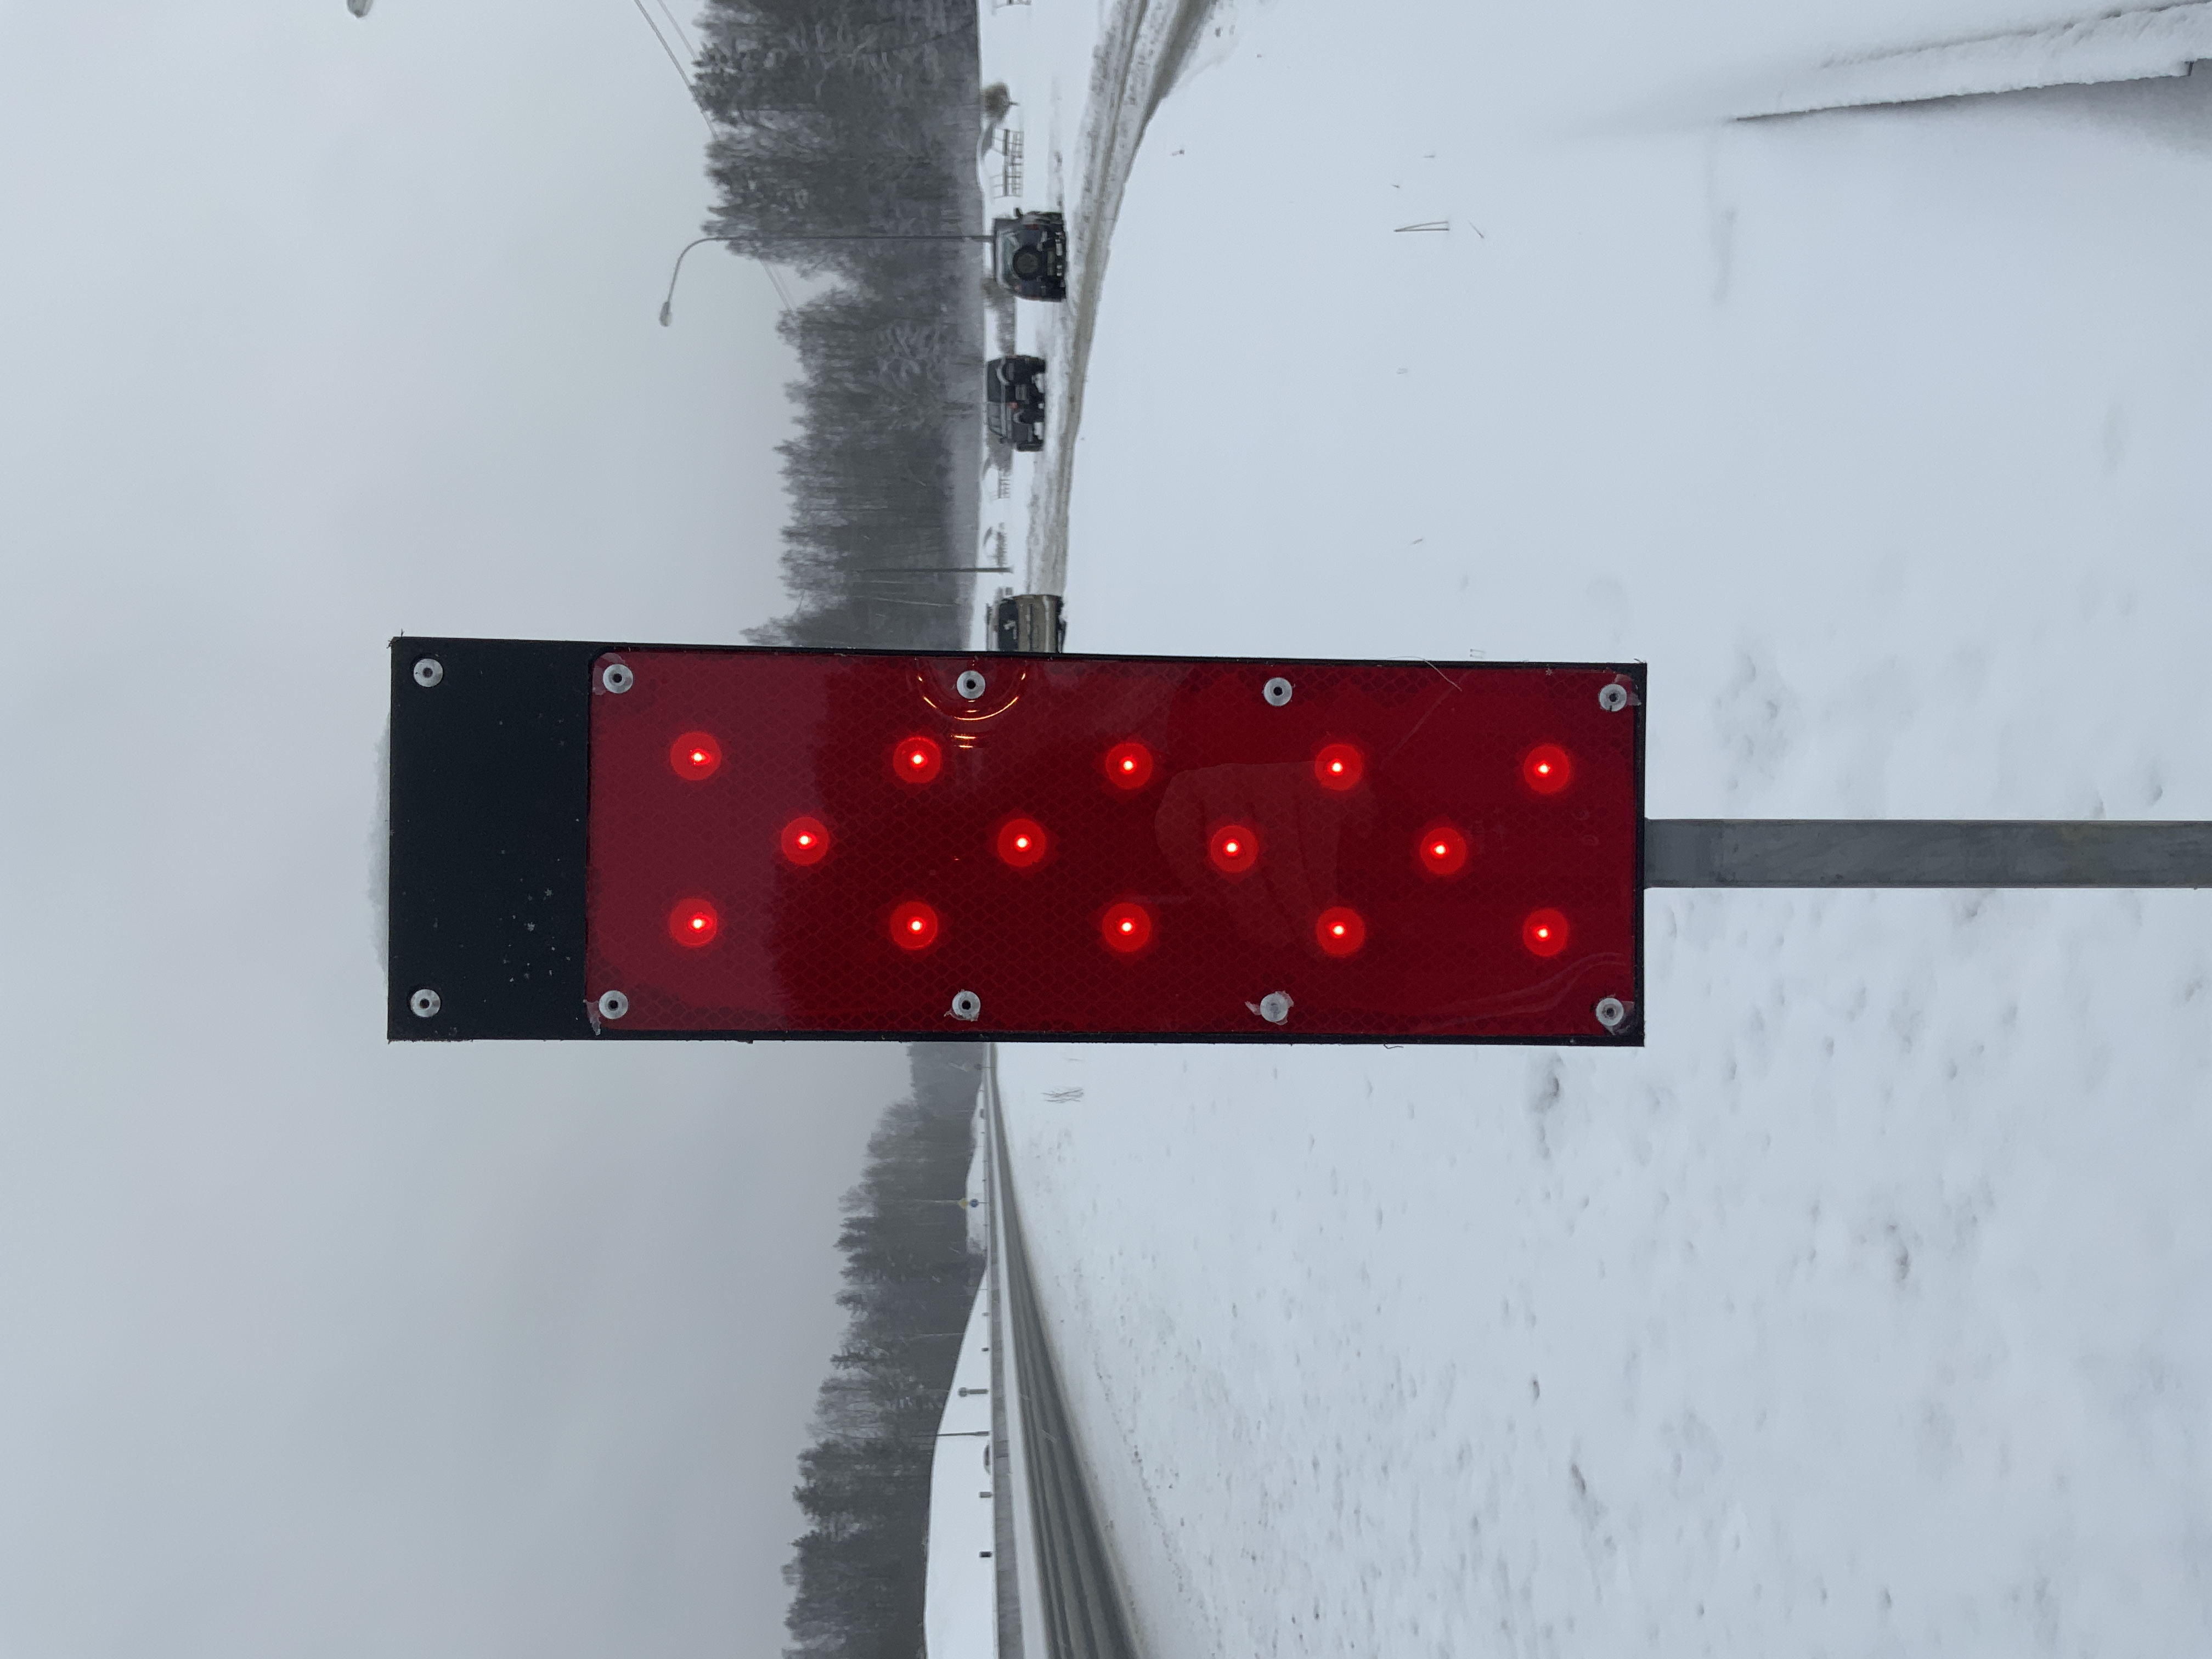 Testing of new signal lamps in the harsh conditions of the Leningrad region.